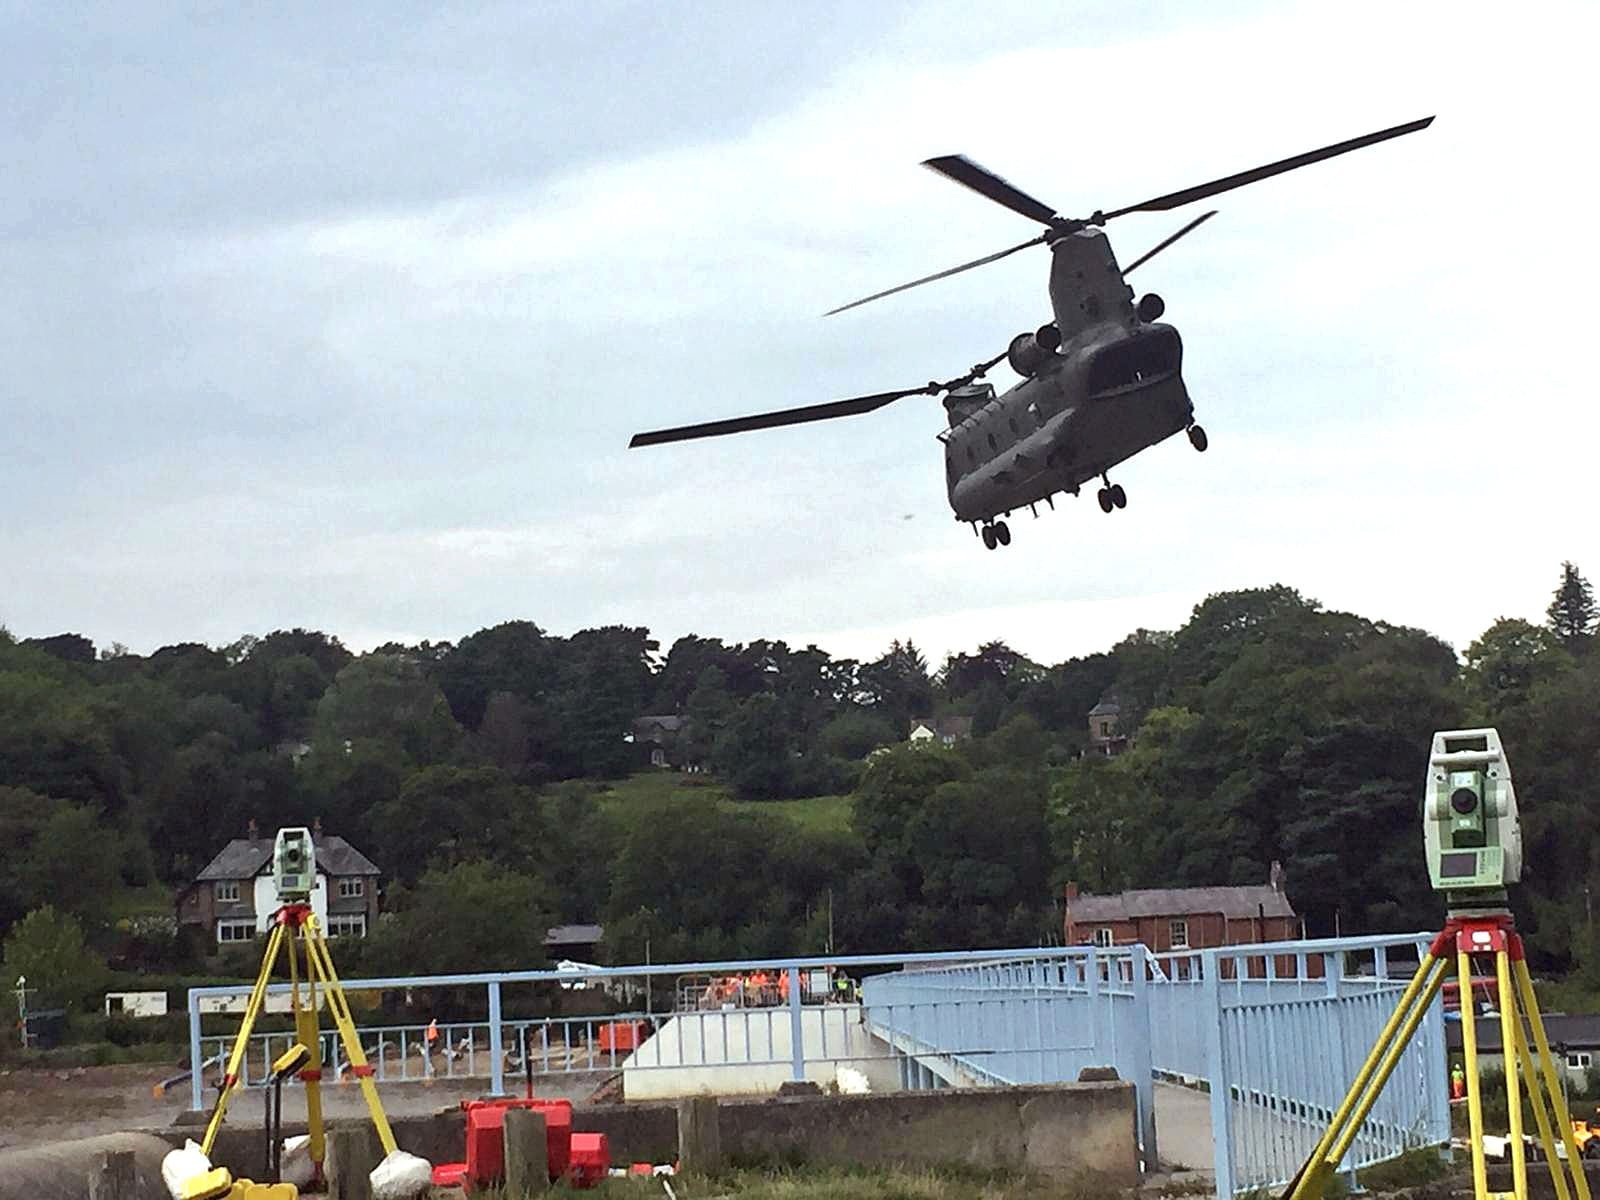 Chinook helipcopter helping at Toddbrook reservoir